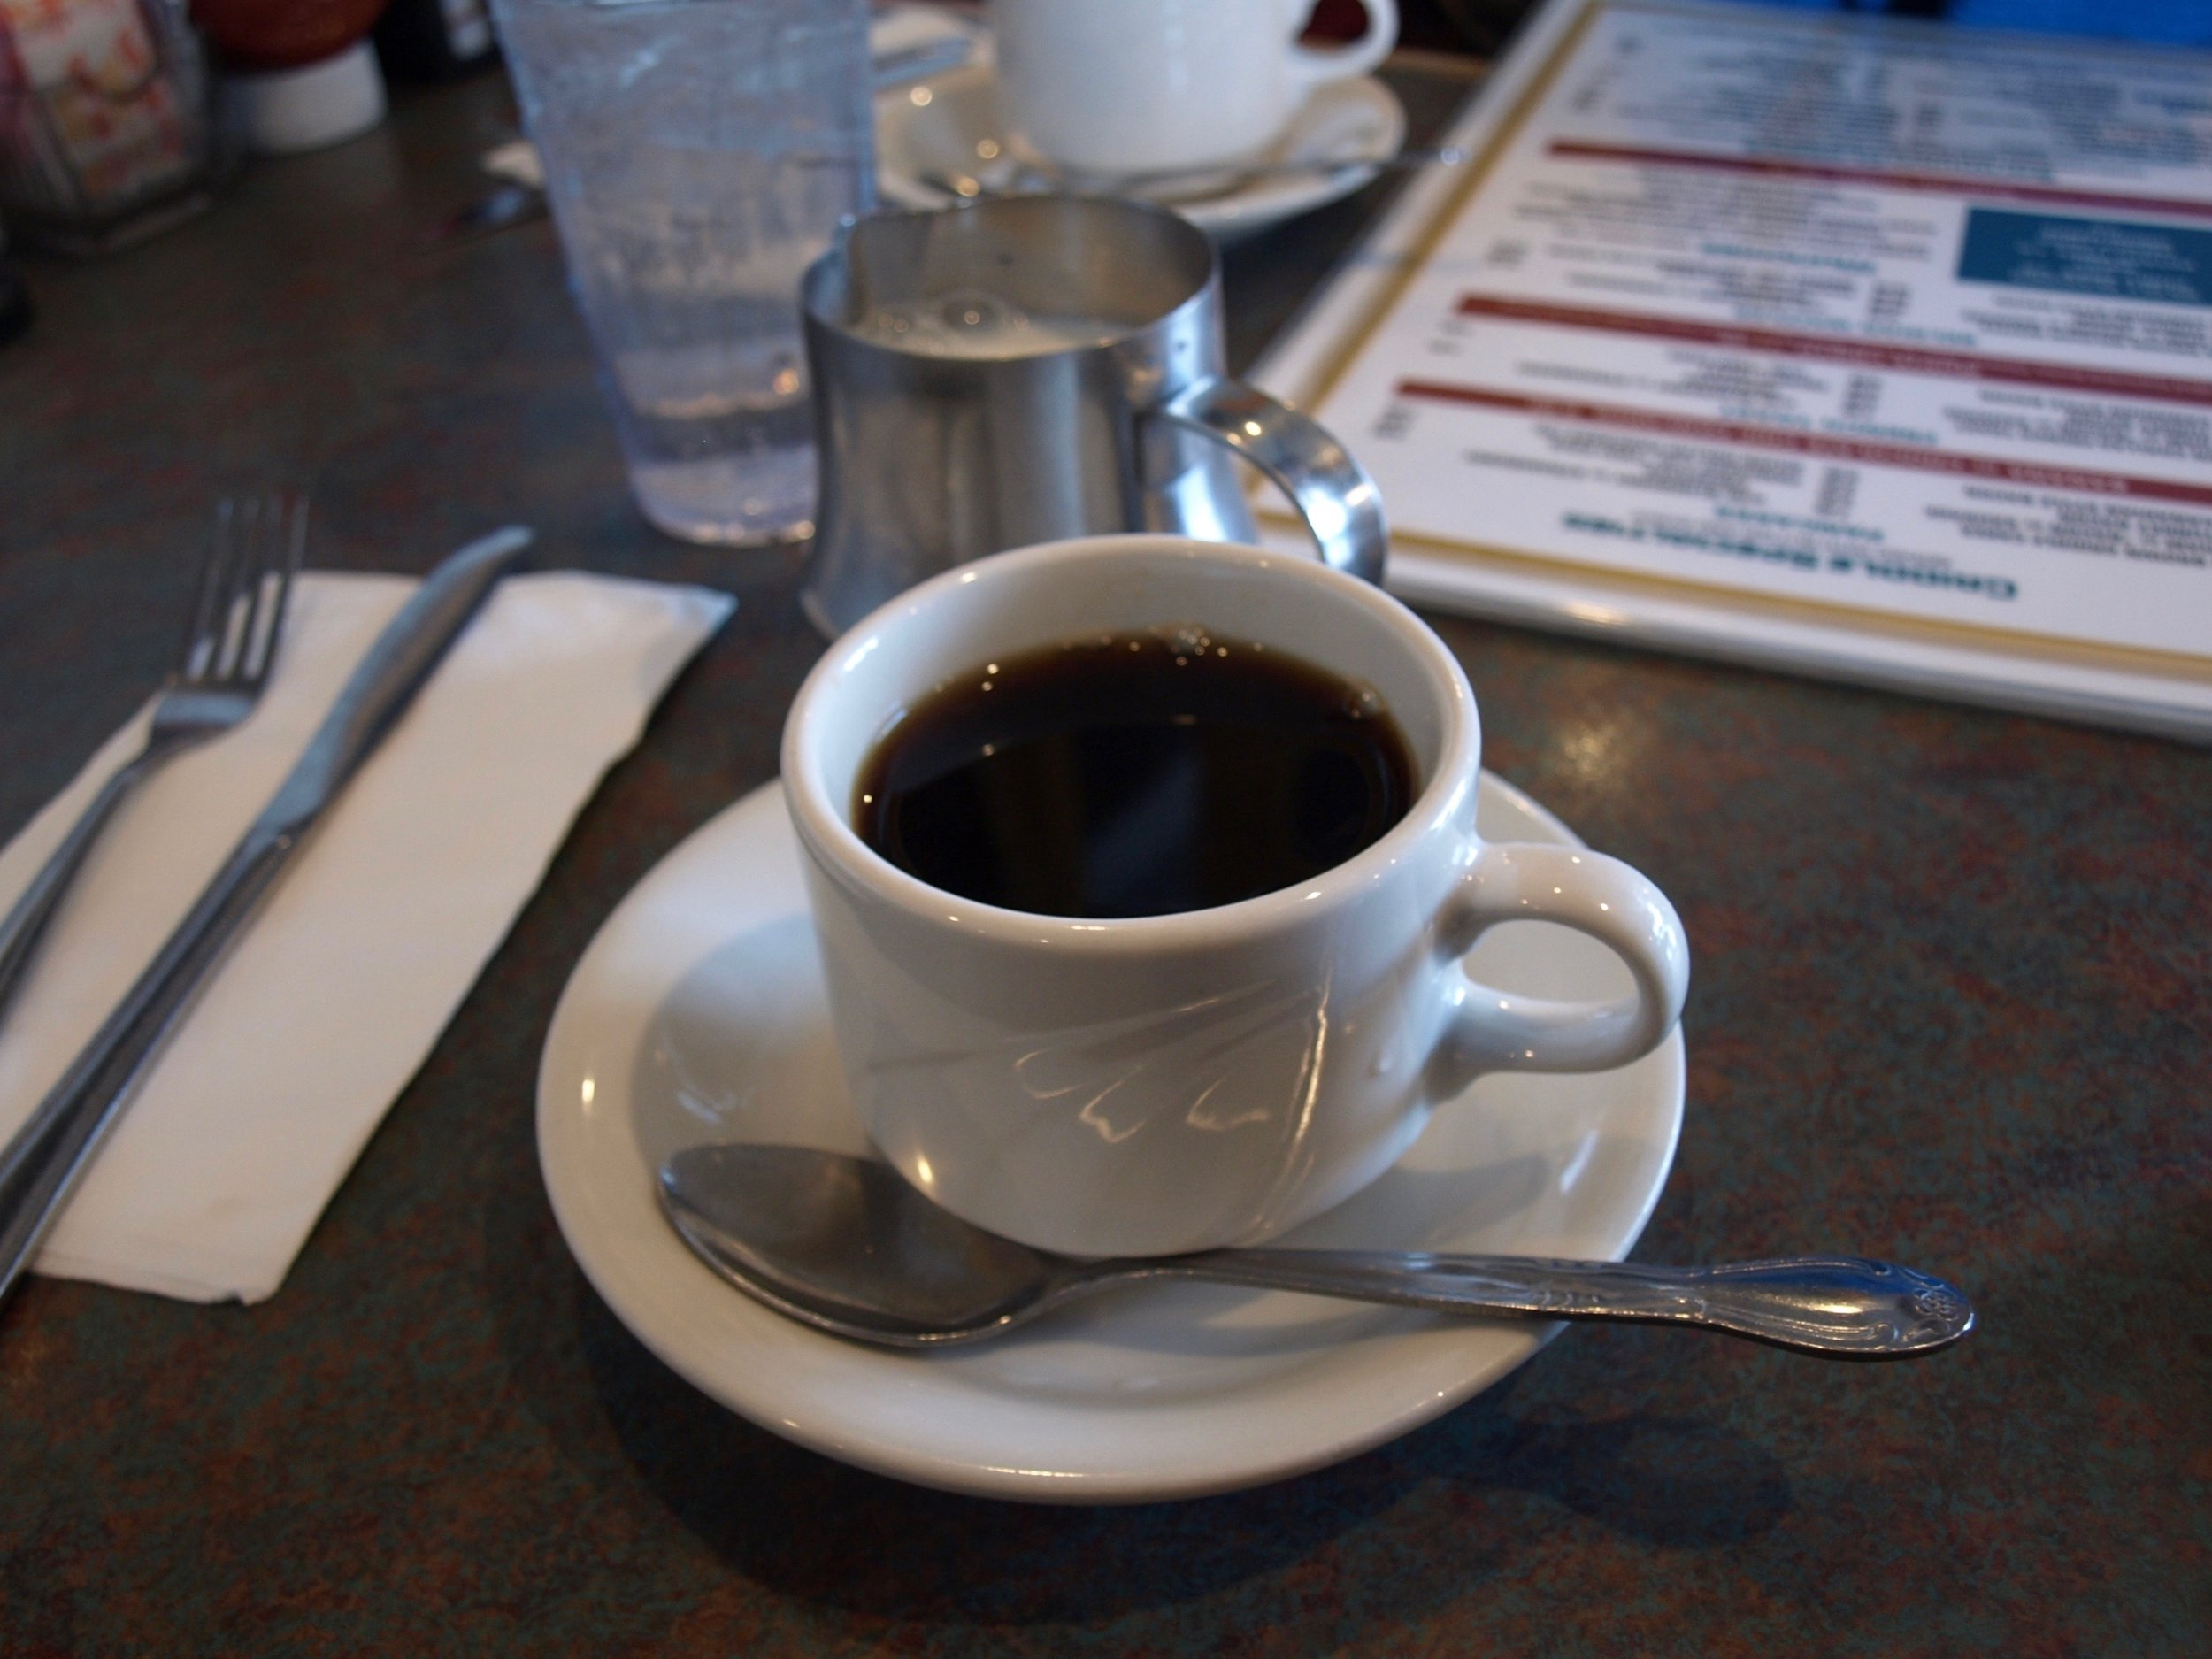 Who doesn't have time for coffee and conversation at Sweet Hollow Diner?